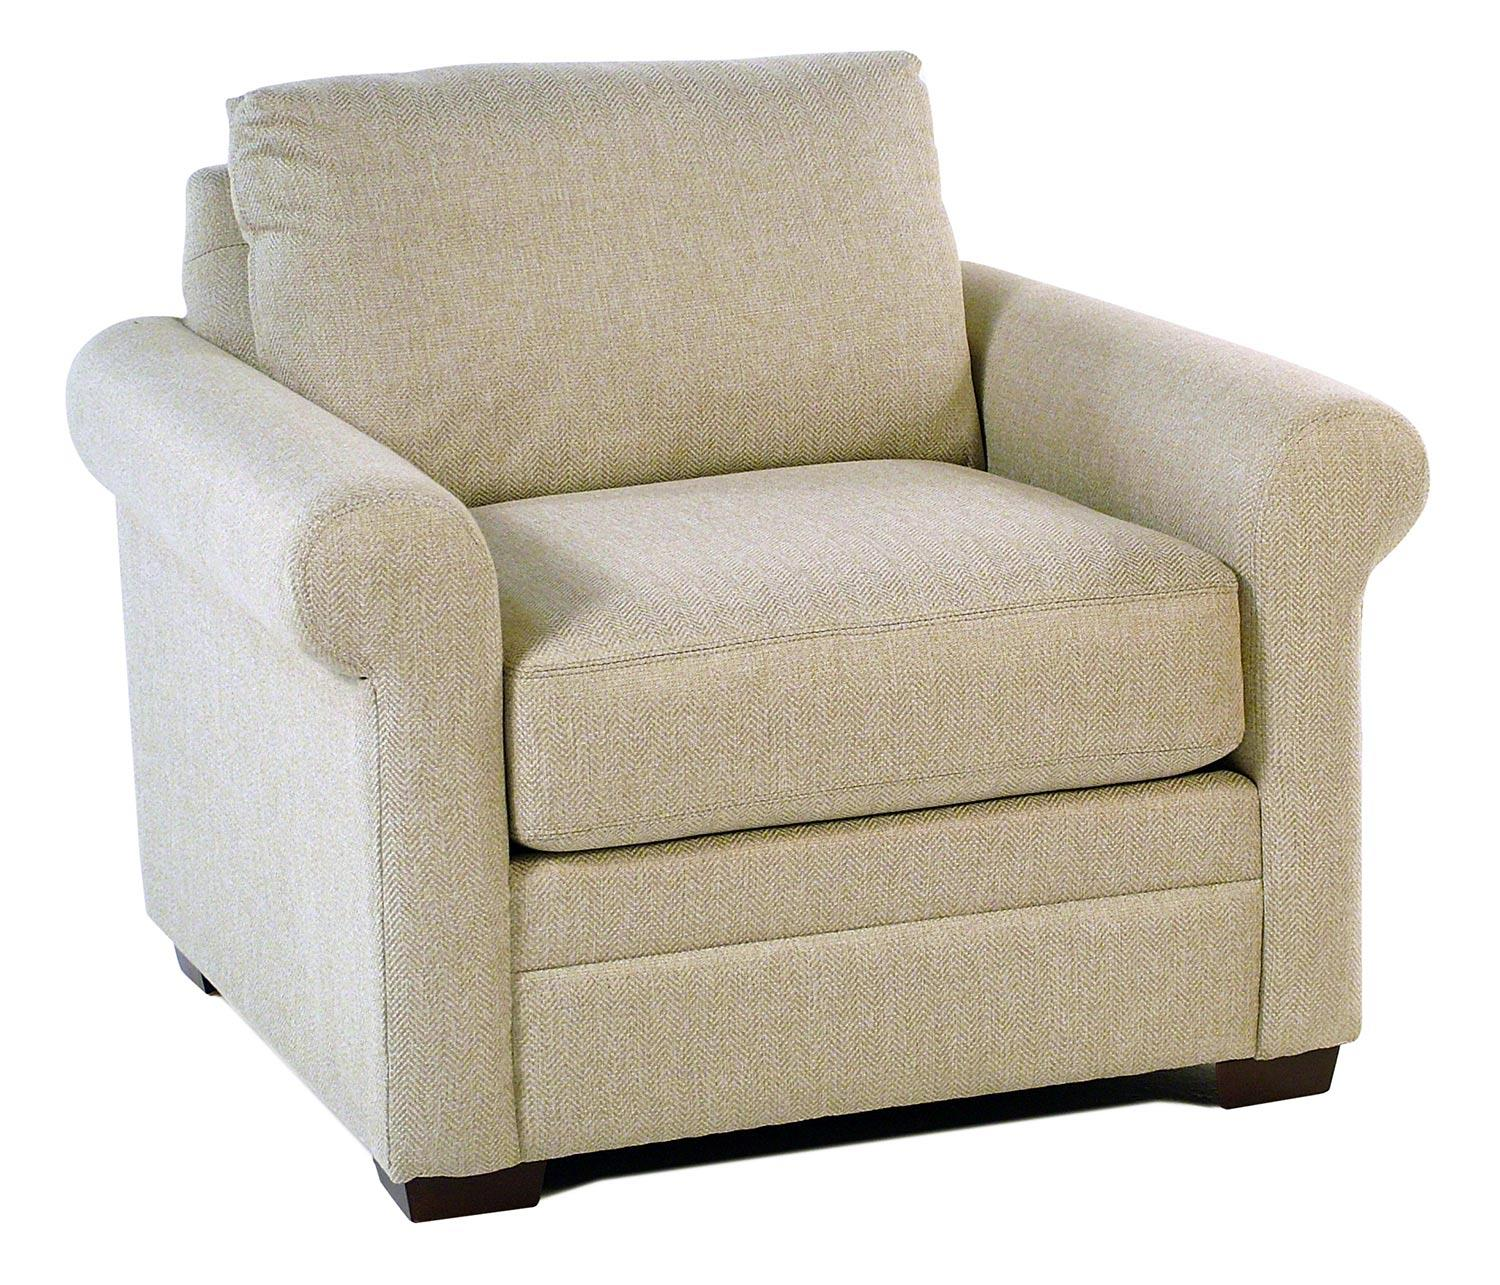 Cozy Life F9 Custom Collection Romance Upholstered Chair - Item Number: F921310-R10